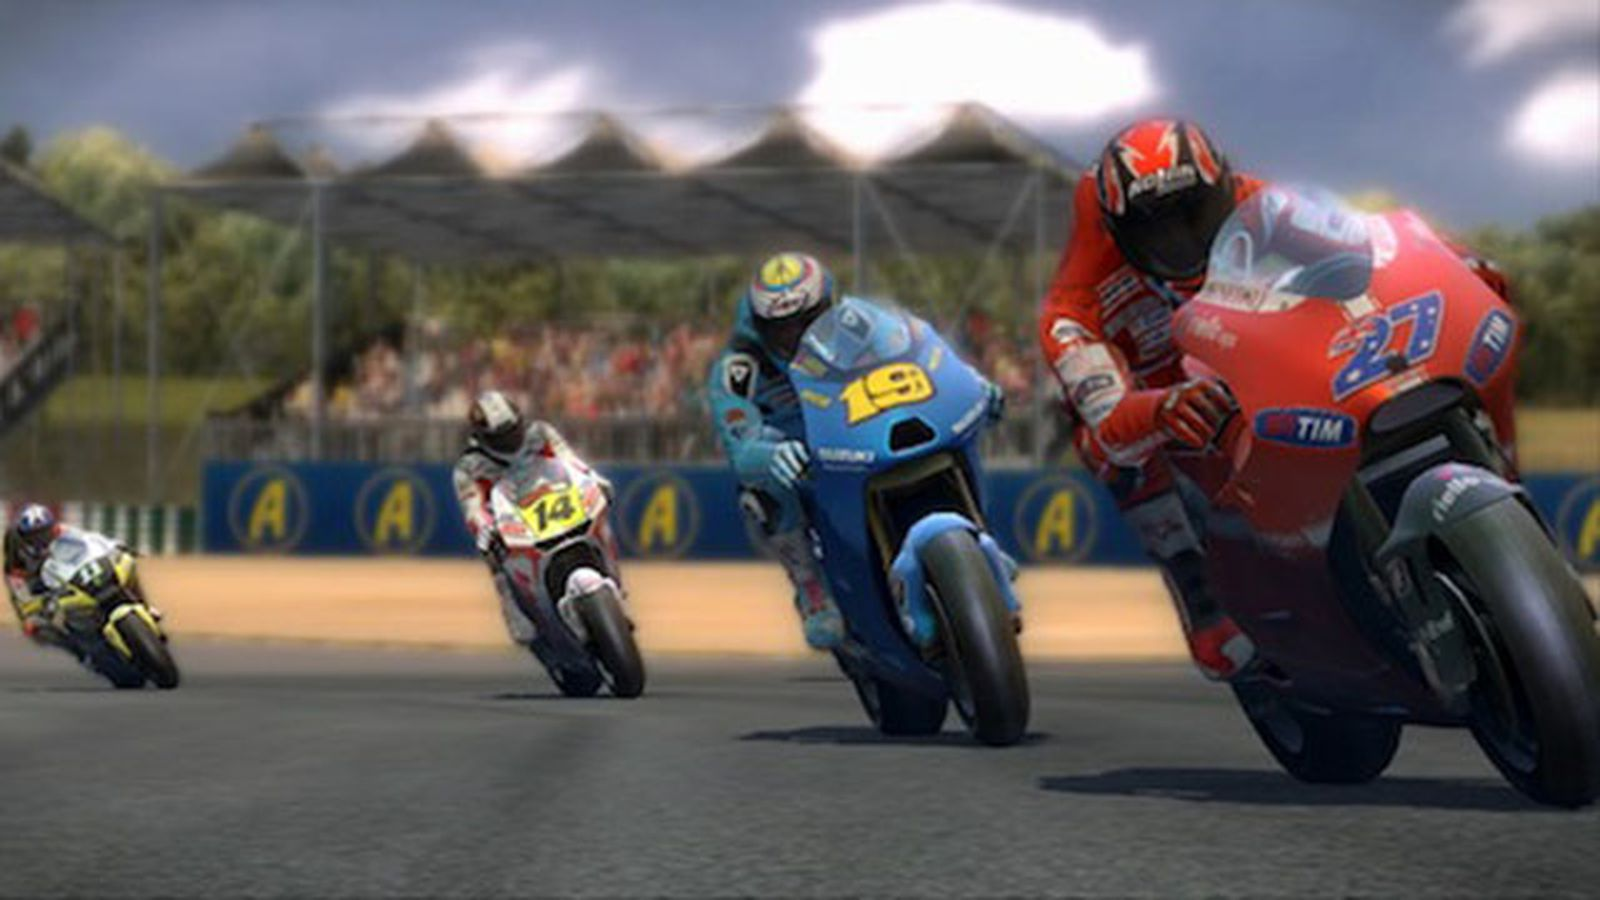 MotoGP 14 coming to PS4, PC, PS3 and Xbox 360 on June 20 - Polygon